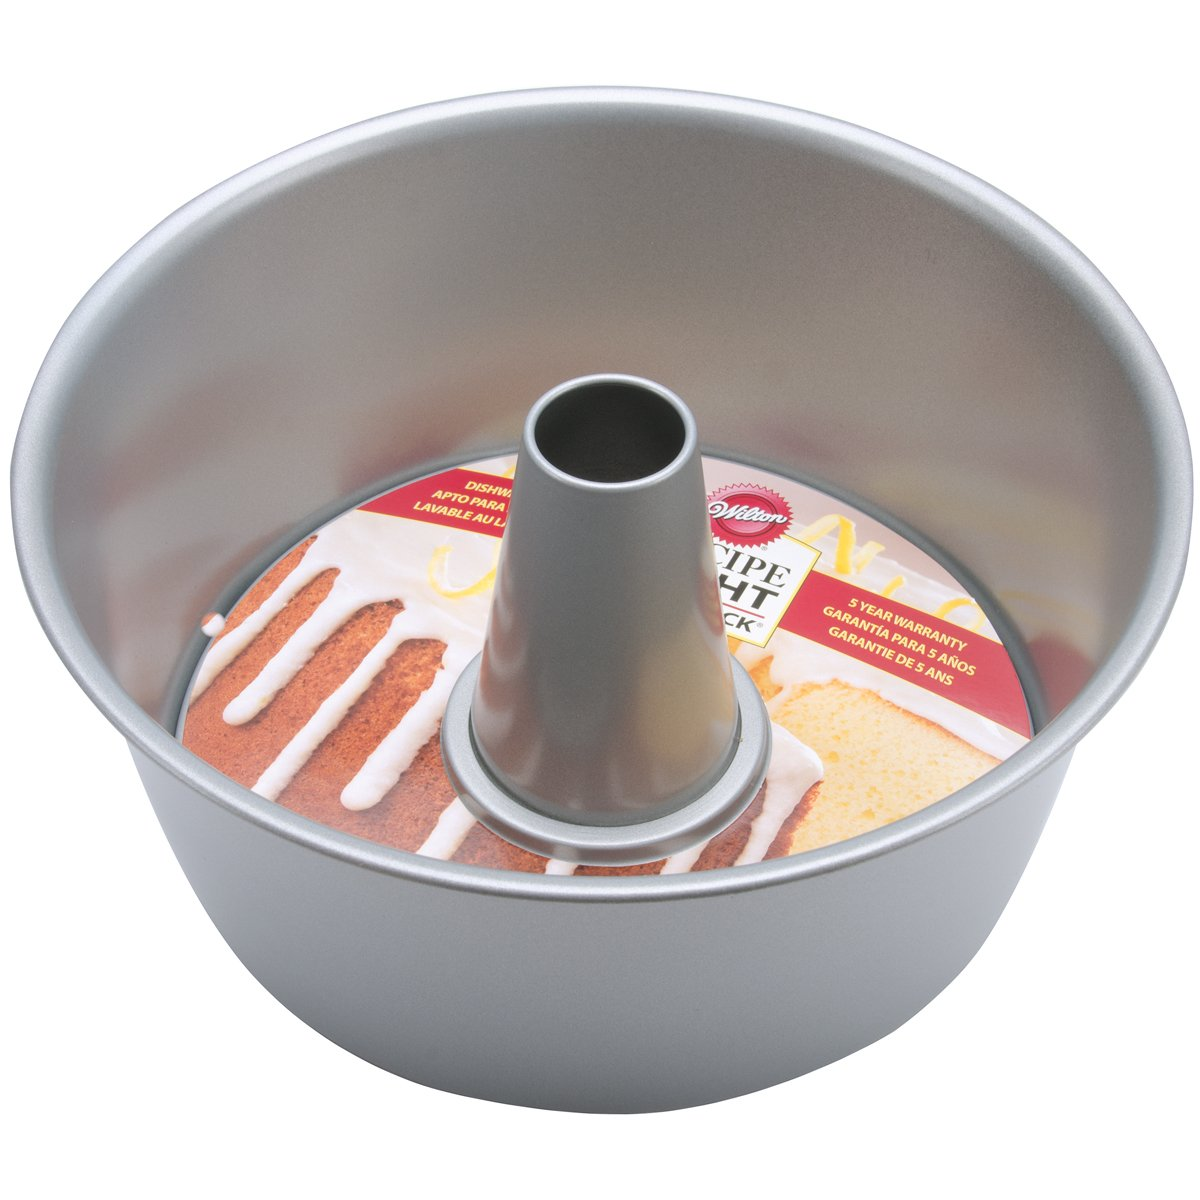 Wilton Recipe Right Angel Food Pan 2105-983